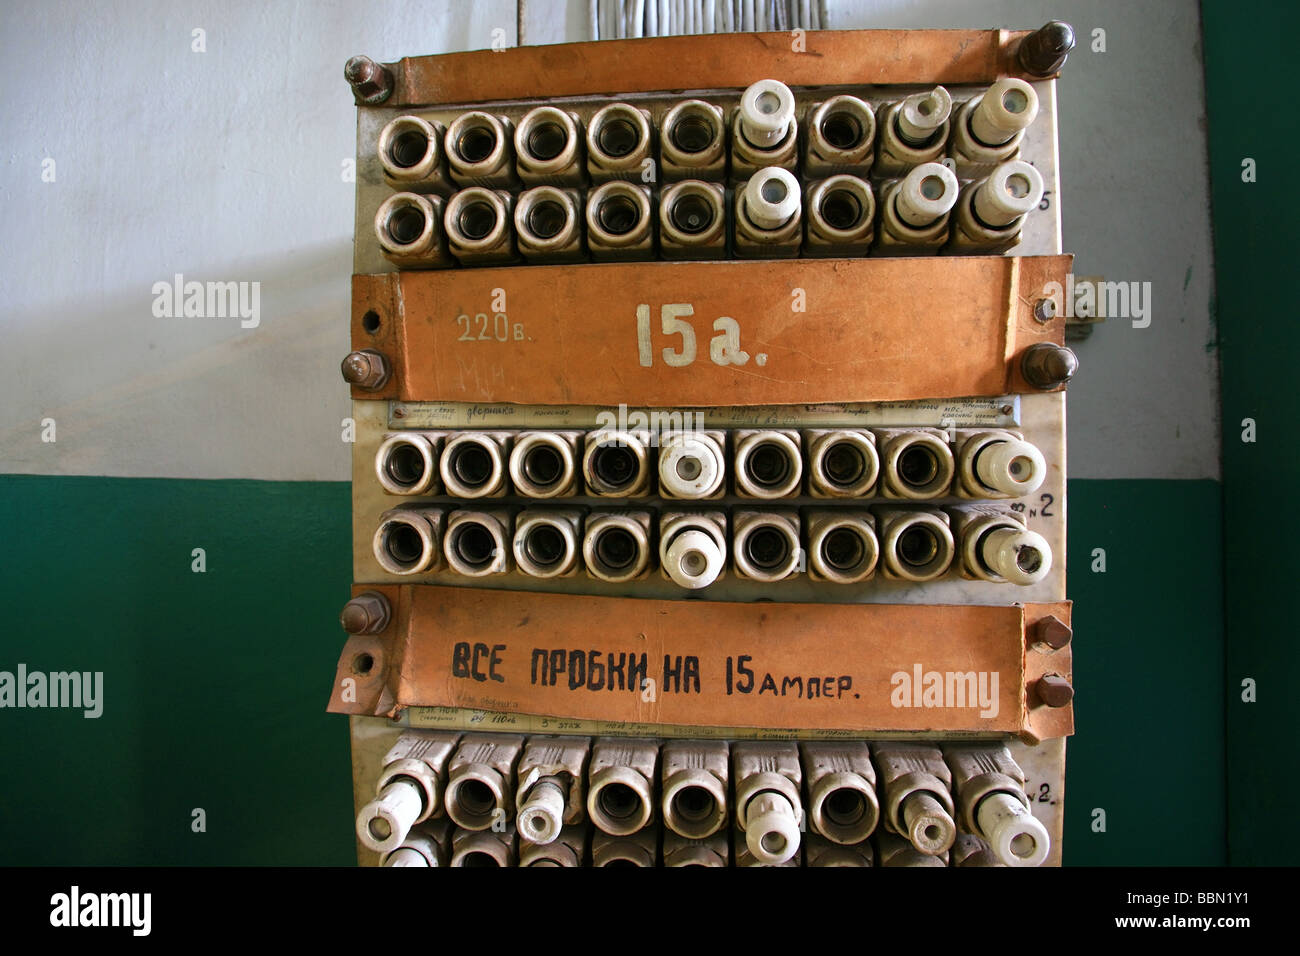 old fuses fuse box stock photos old fuses fuse box stock images rh alamy com Old Fuse Box Wiring Diagrams Old Buss Fuse Box